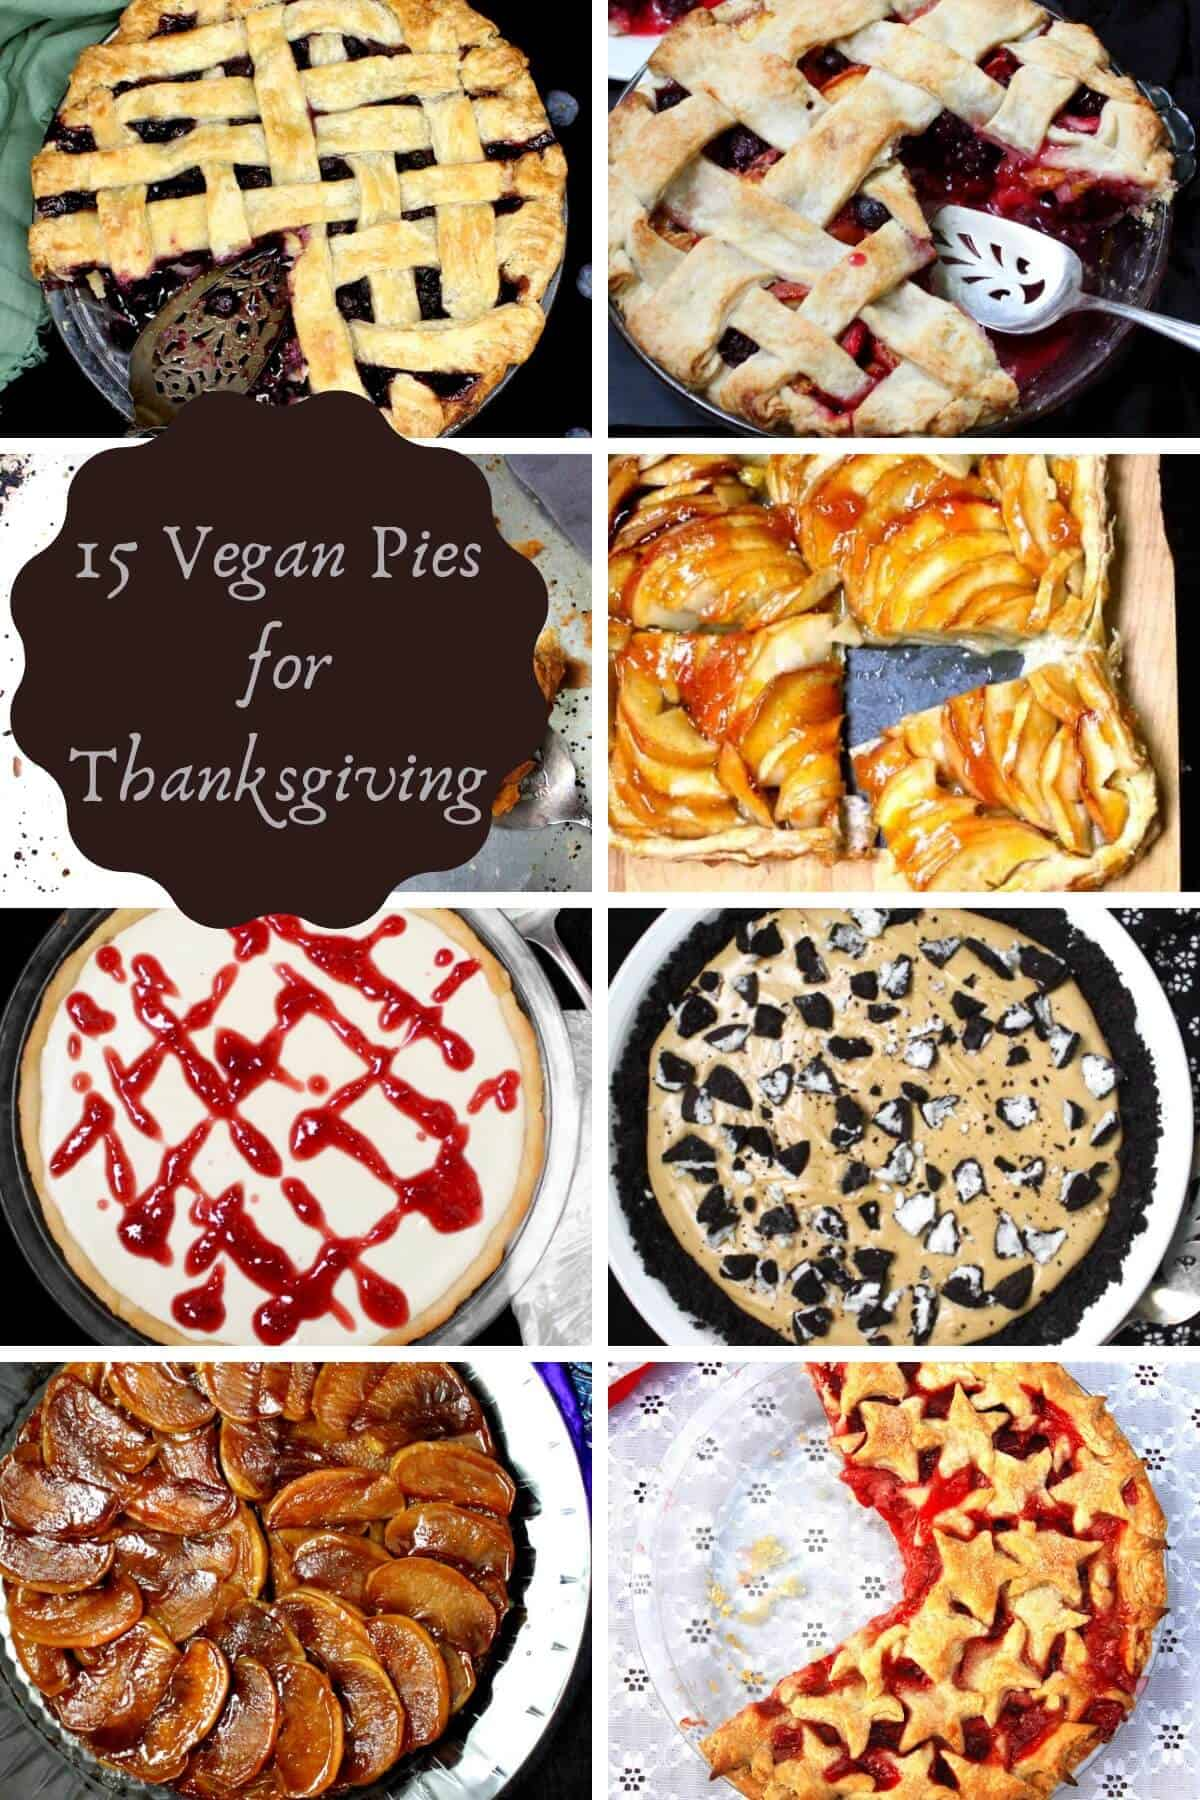 Photos of eight vegan pies for Thanksgiving